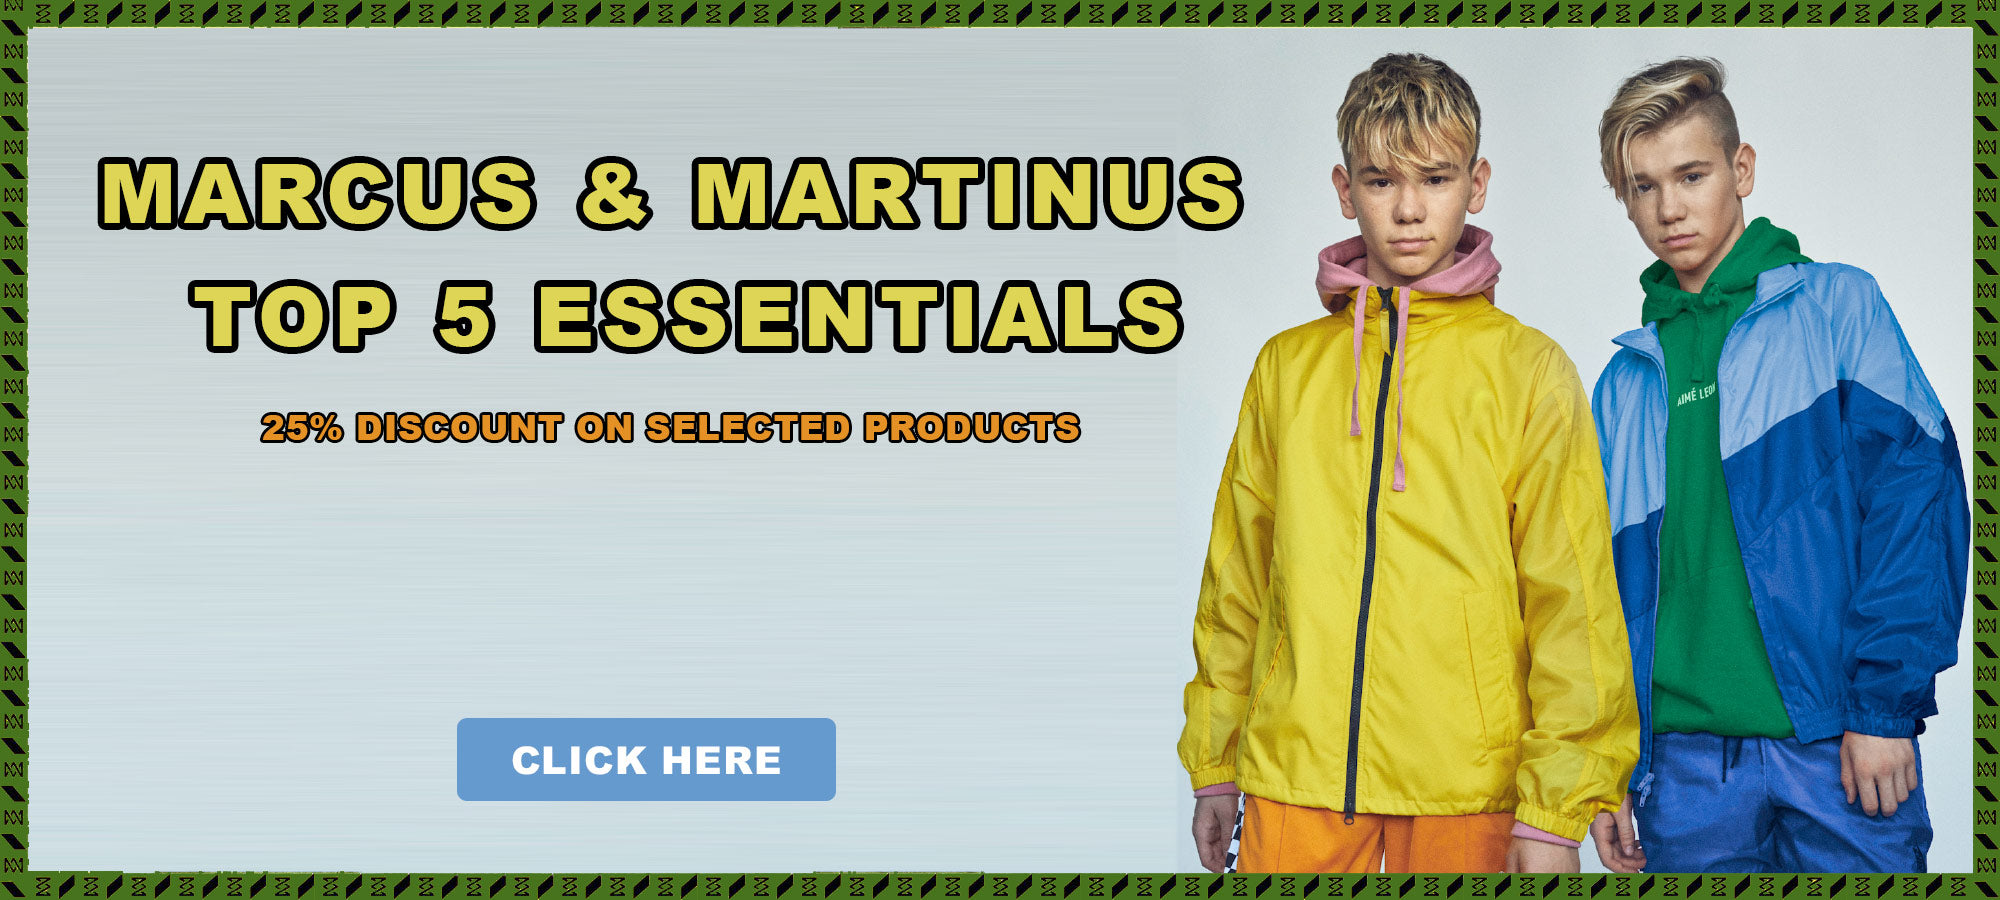 Avansert Marcus & Martinus Official Merchandise | Clothes, Accessories and IY-44